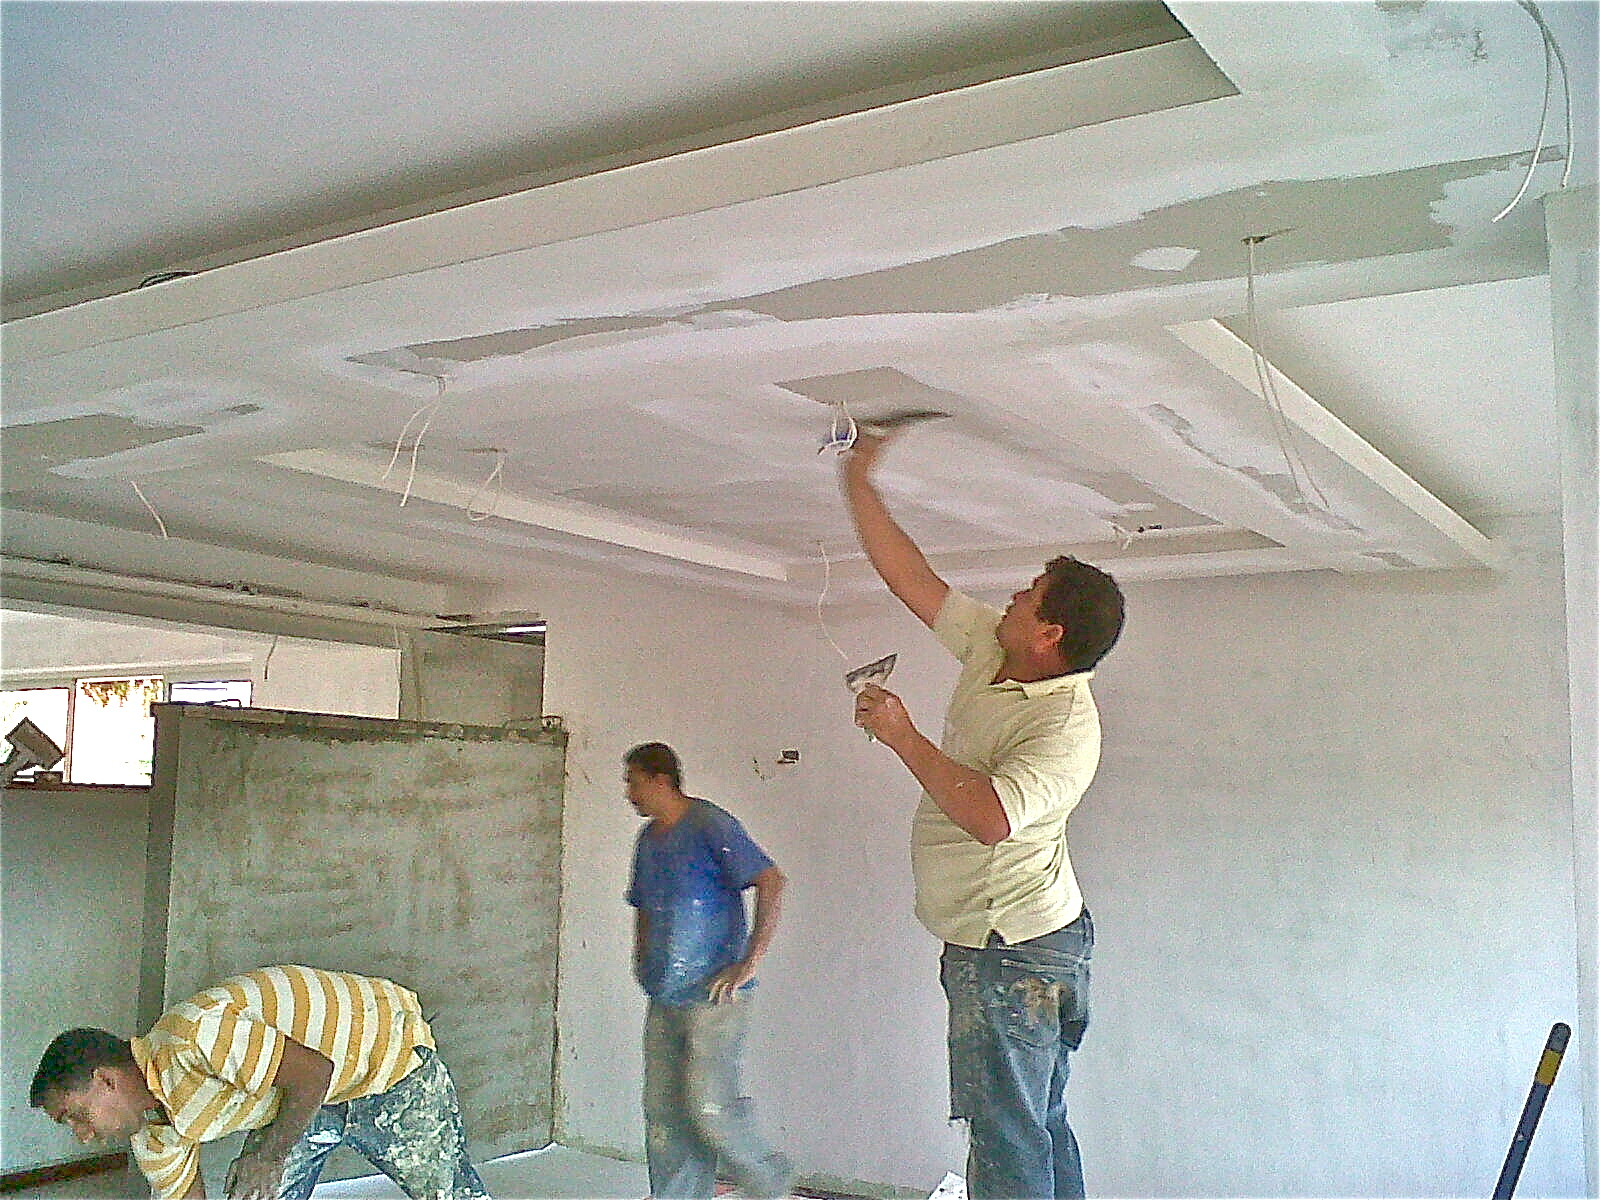 Drywall t remodela for Techos en drywall modernos